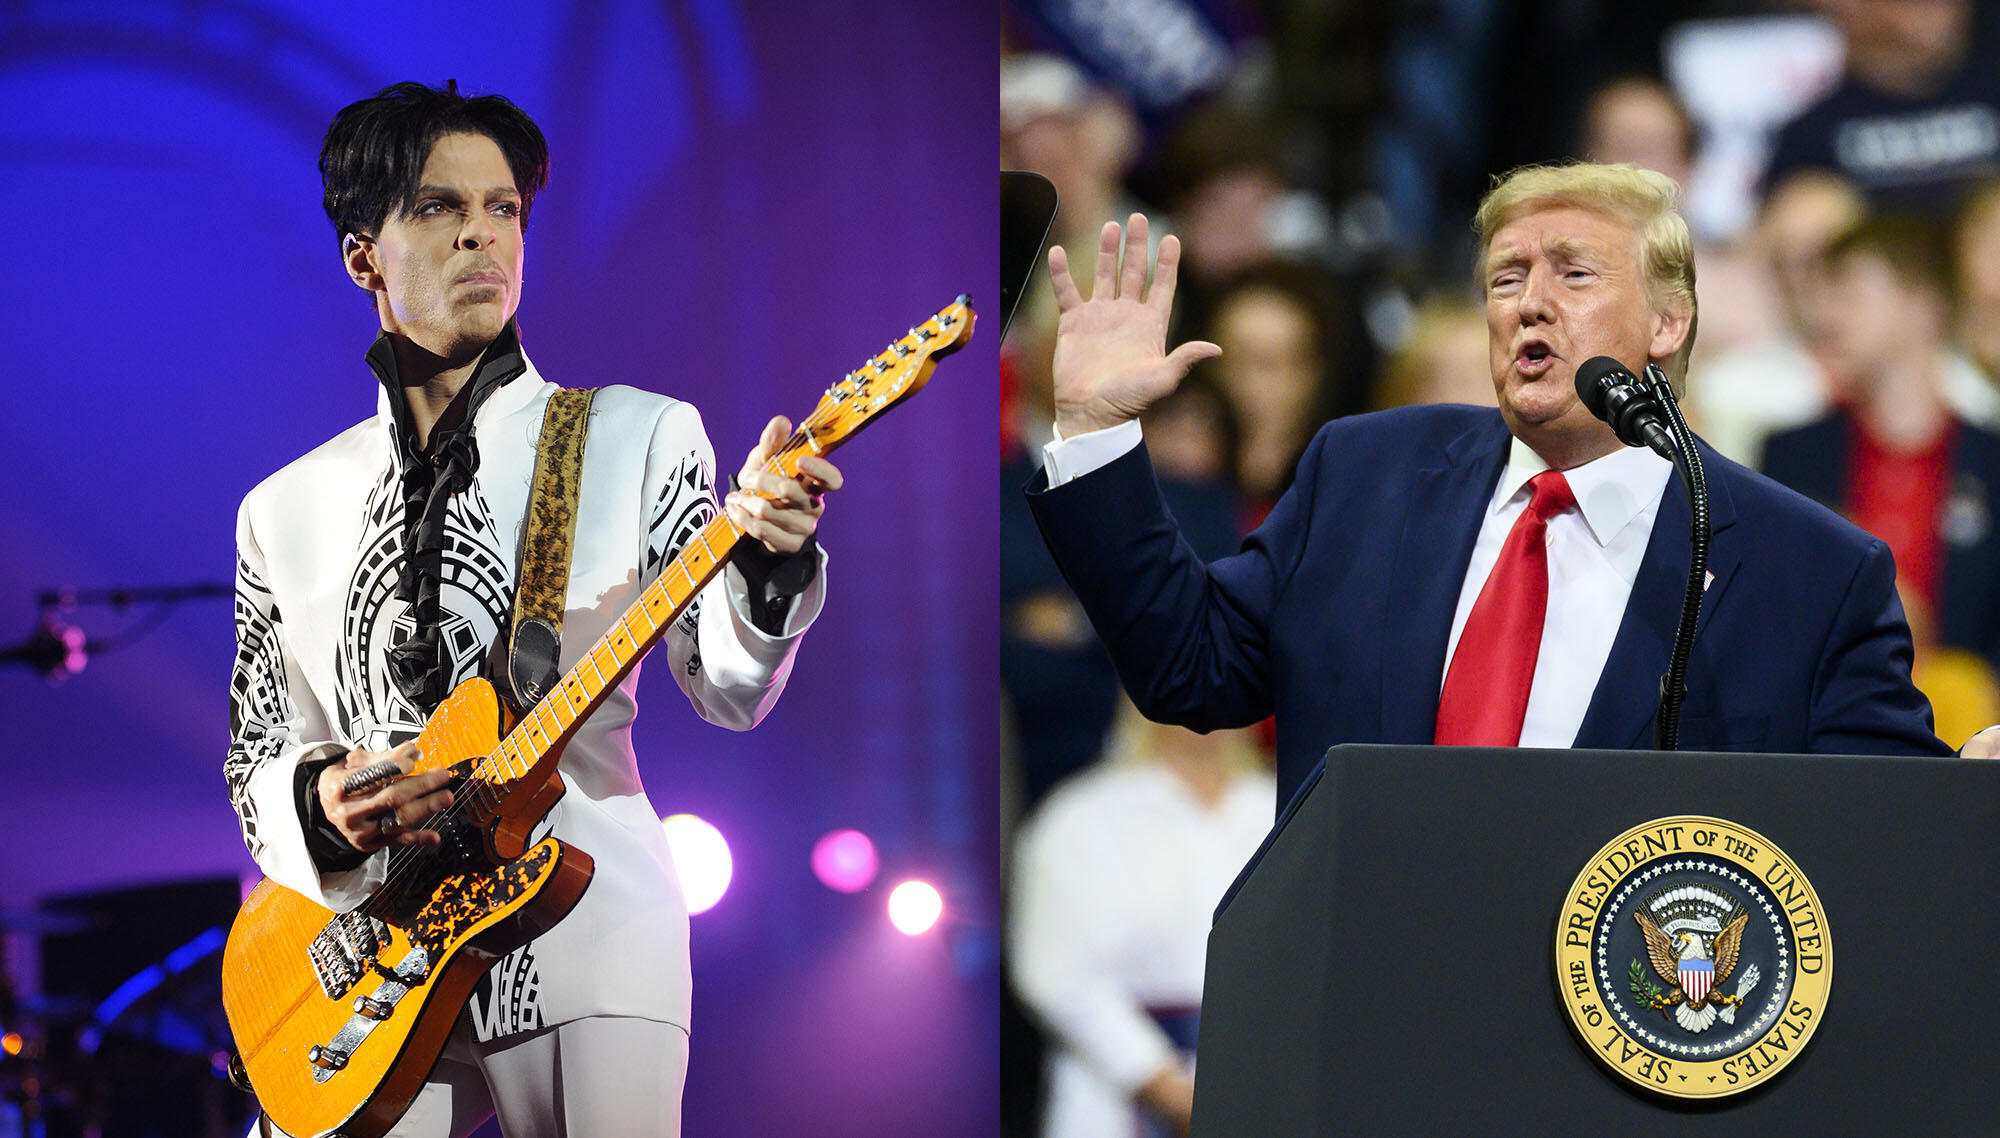 Prince's Estate Calls Out Trump For Breaking Promise To Not Play His Music